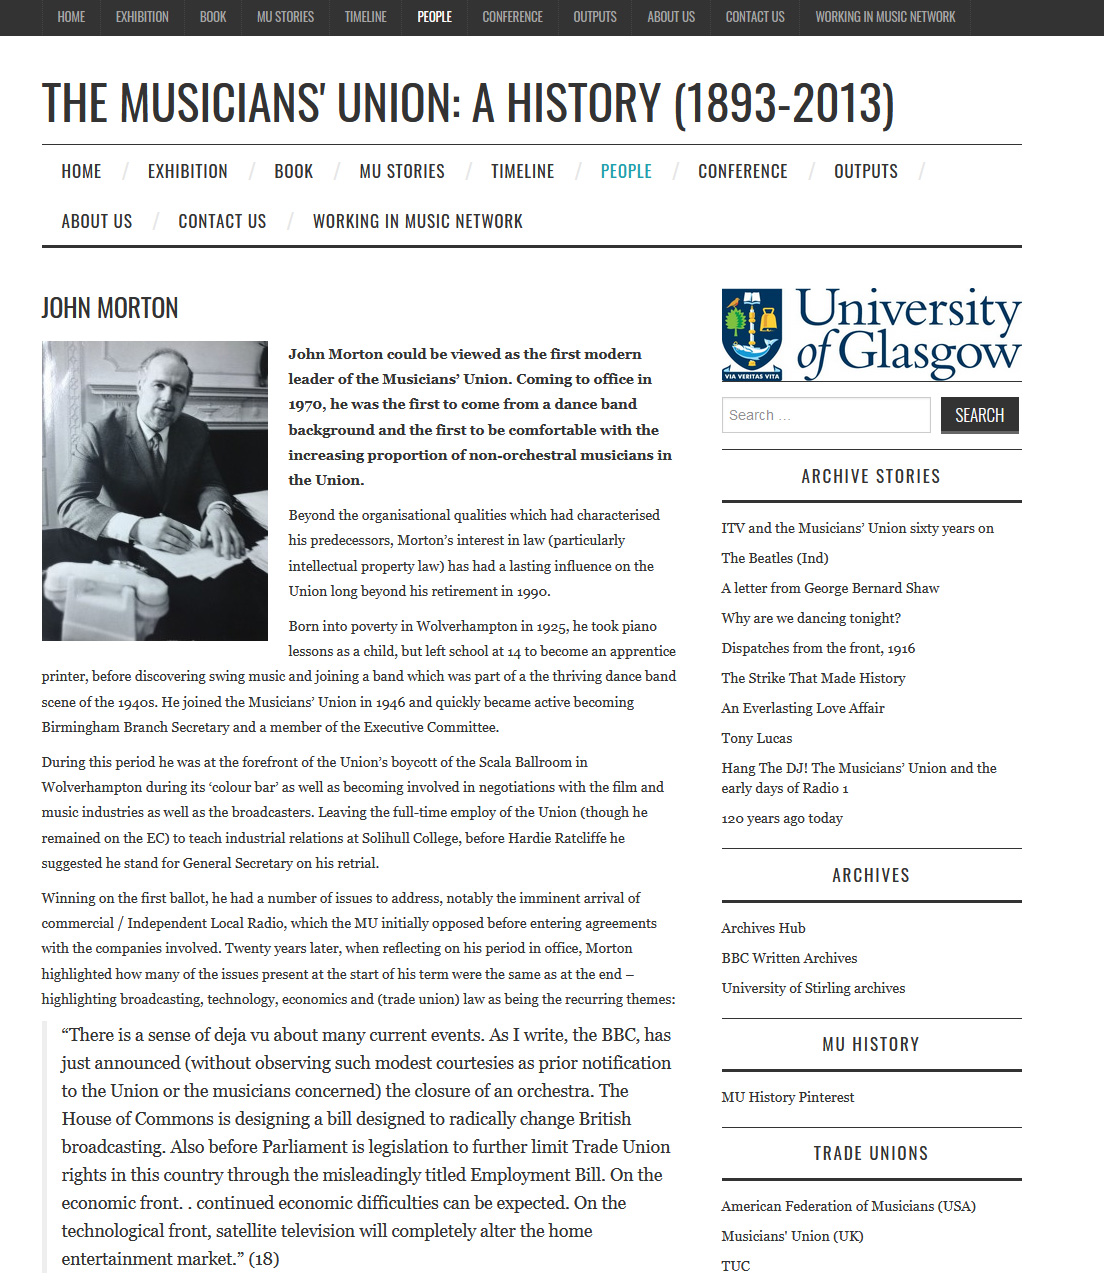 Biography of John Morton, general secretary of the Musicians' Union from 1971 to 1990